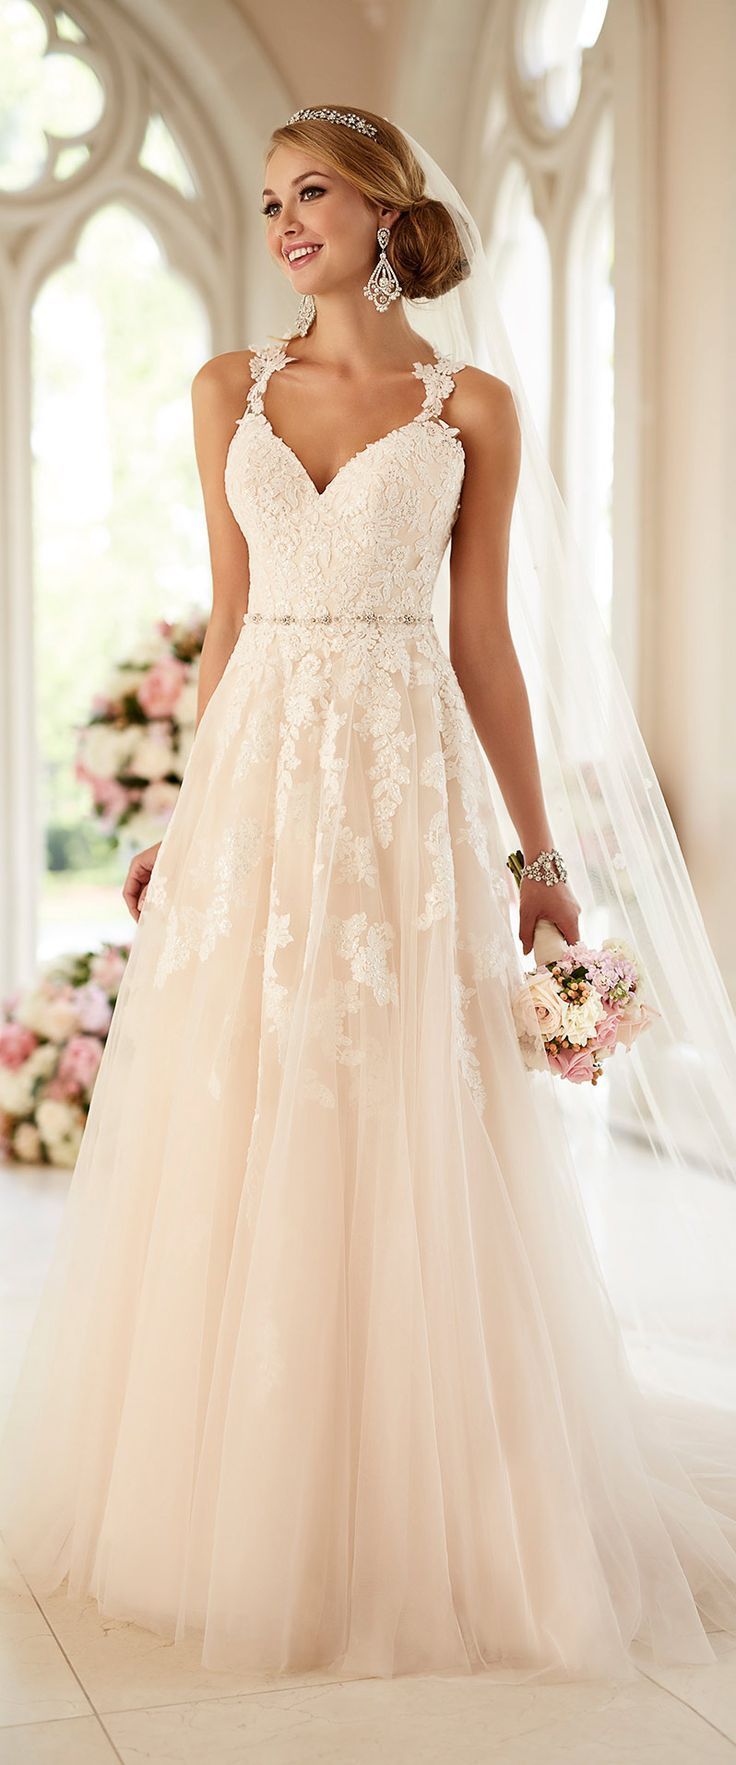 strapless dress hair colorful wedding dress pulchritudinous wedding dresses lace ballgown princesses strapless